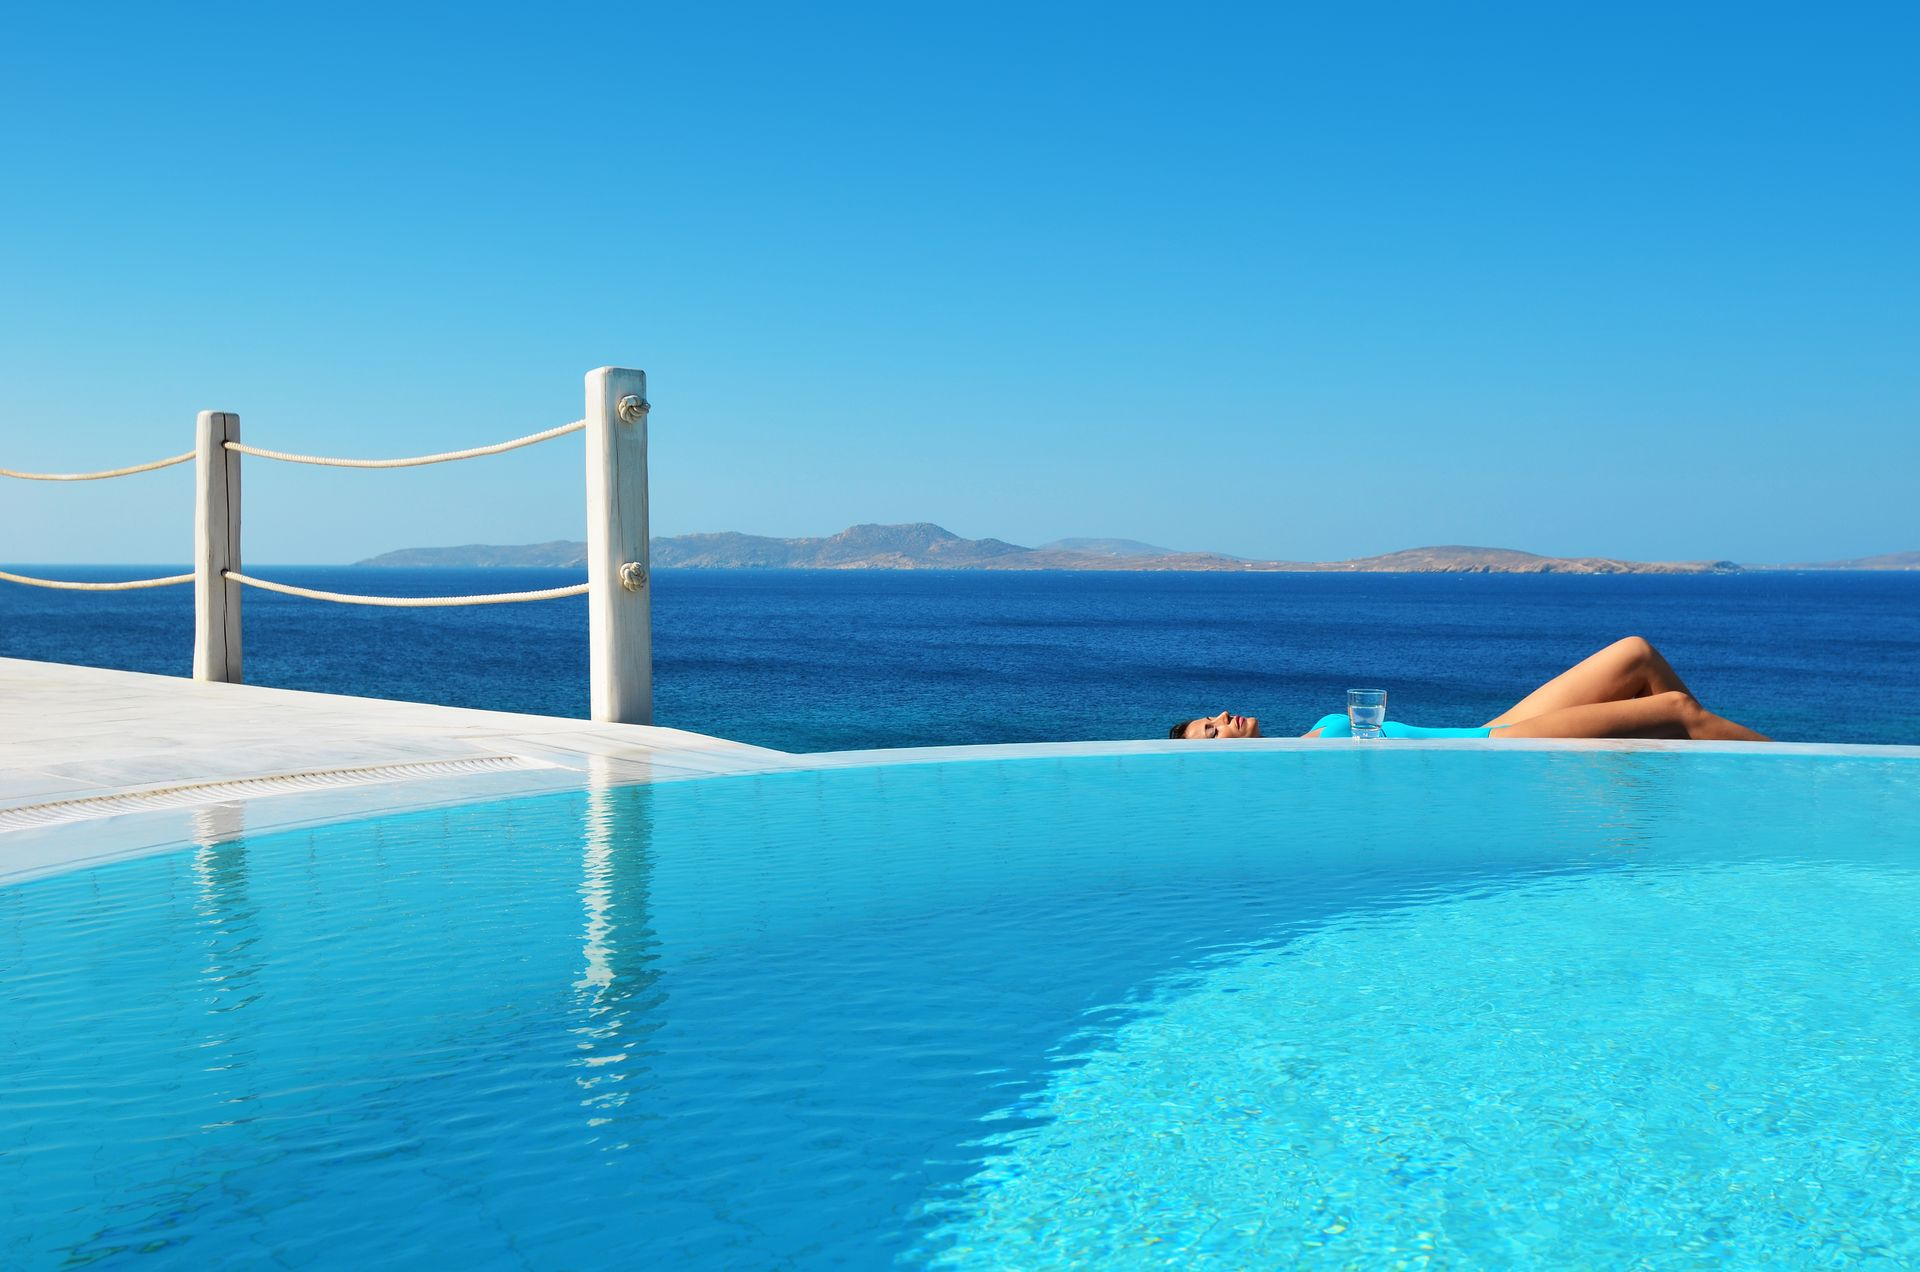 Direct Tv Cable And Internet >> Deluxe Suite Sea View with Private Pool - Mykonos Grand Hotel & Resort, Mykonos, Greece | Book ...